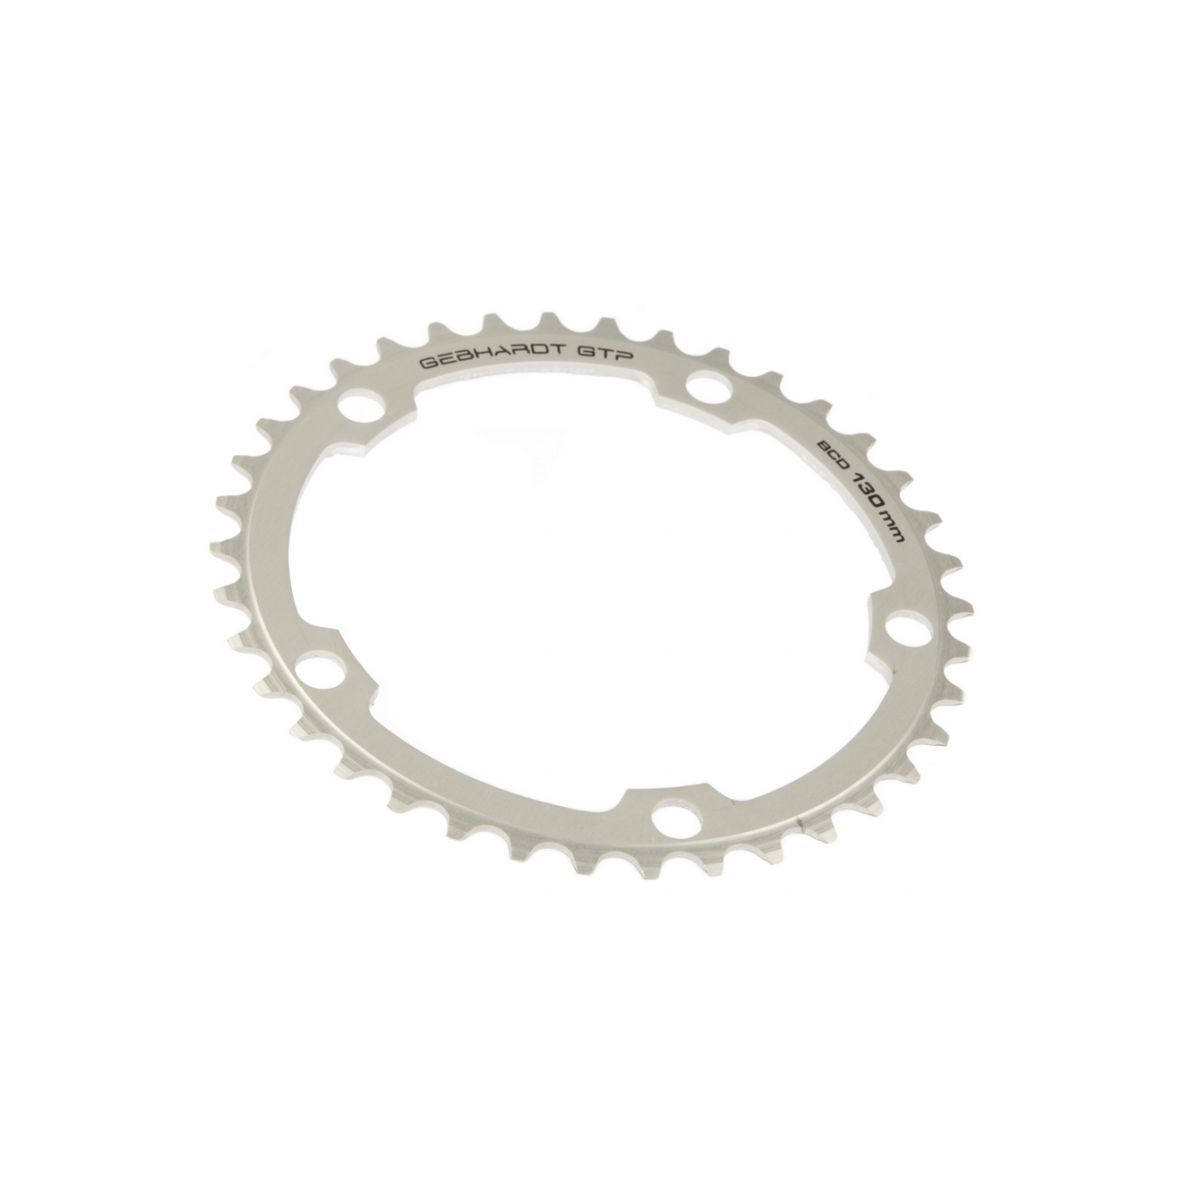 gebhardt chainring classic bcd 130 mm 5hole 42t silver